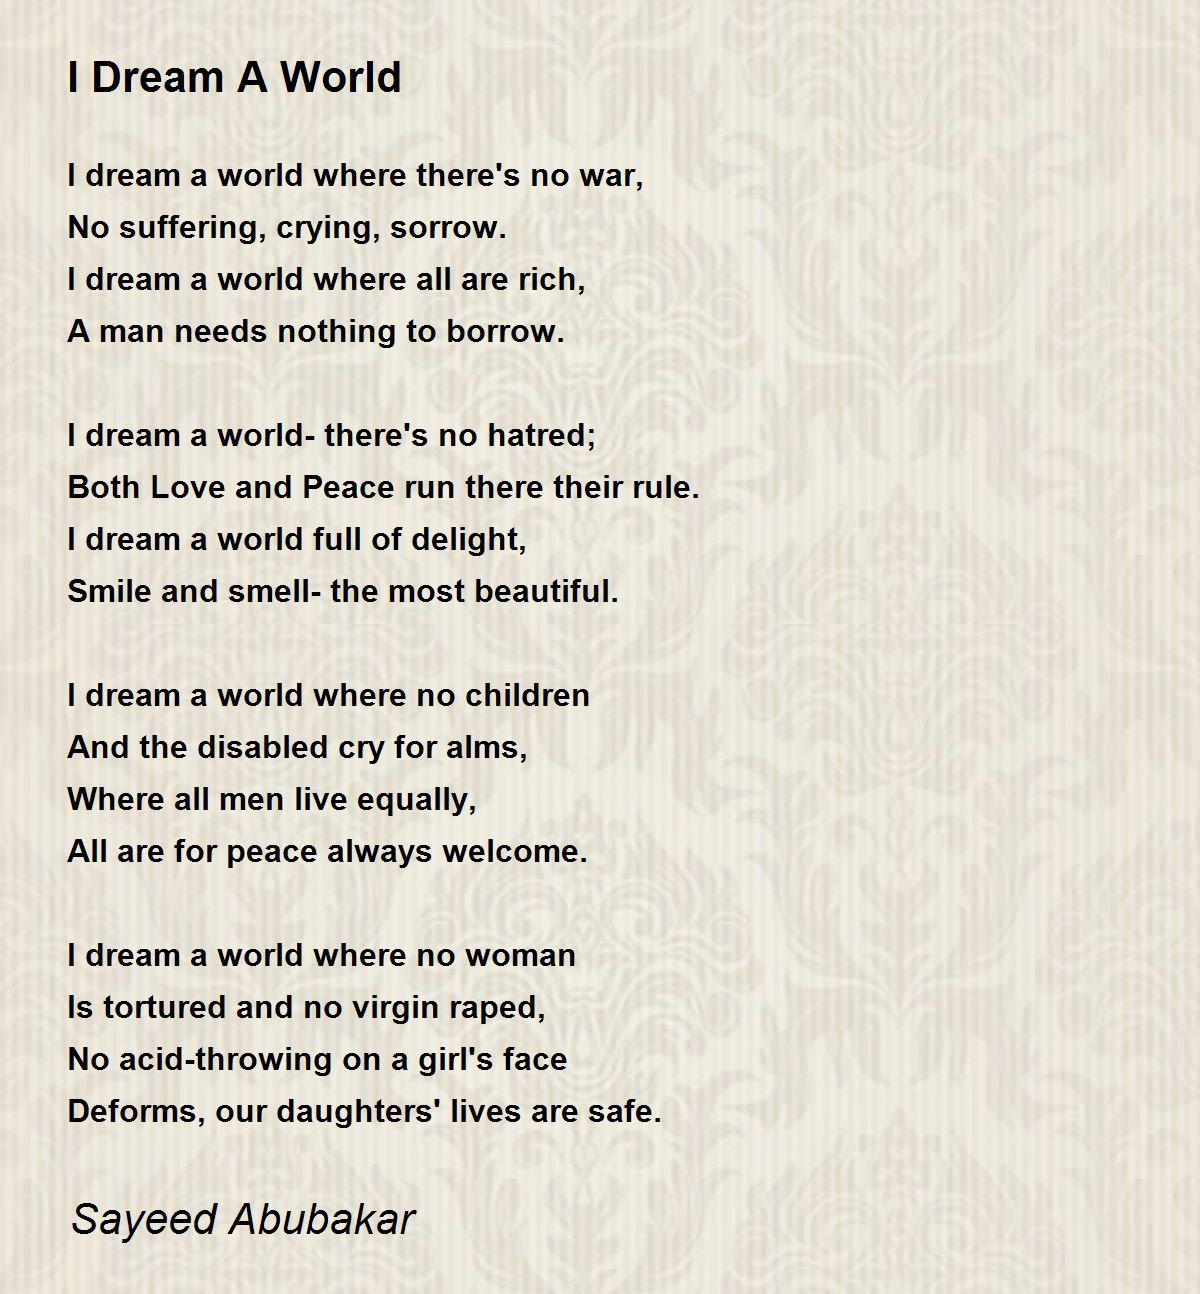 I Dream A World Poem By Sayeed Abubakar Poem Hunter